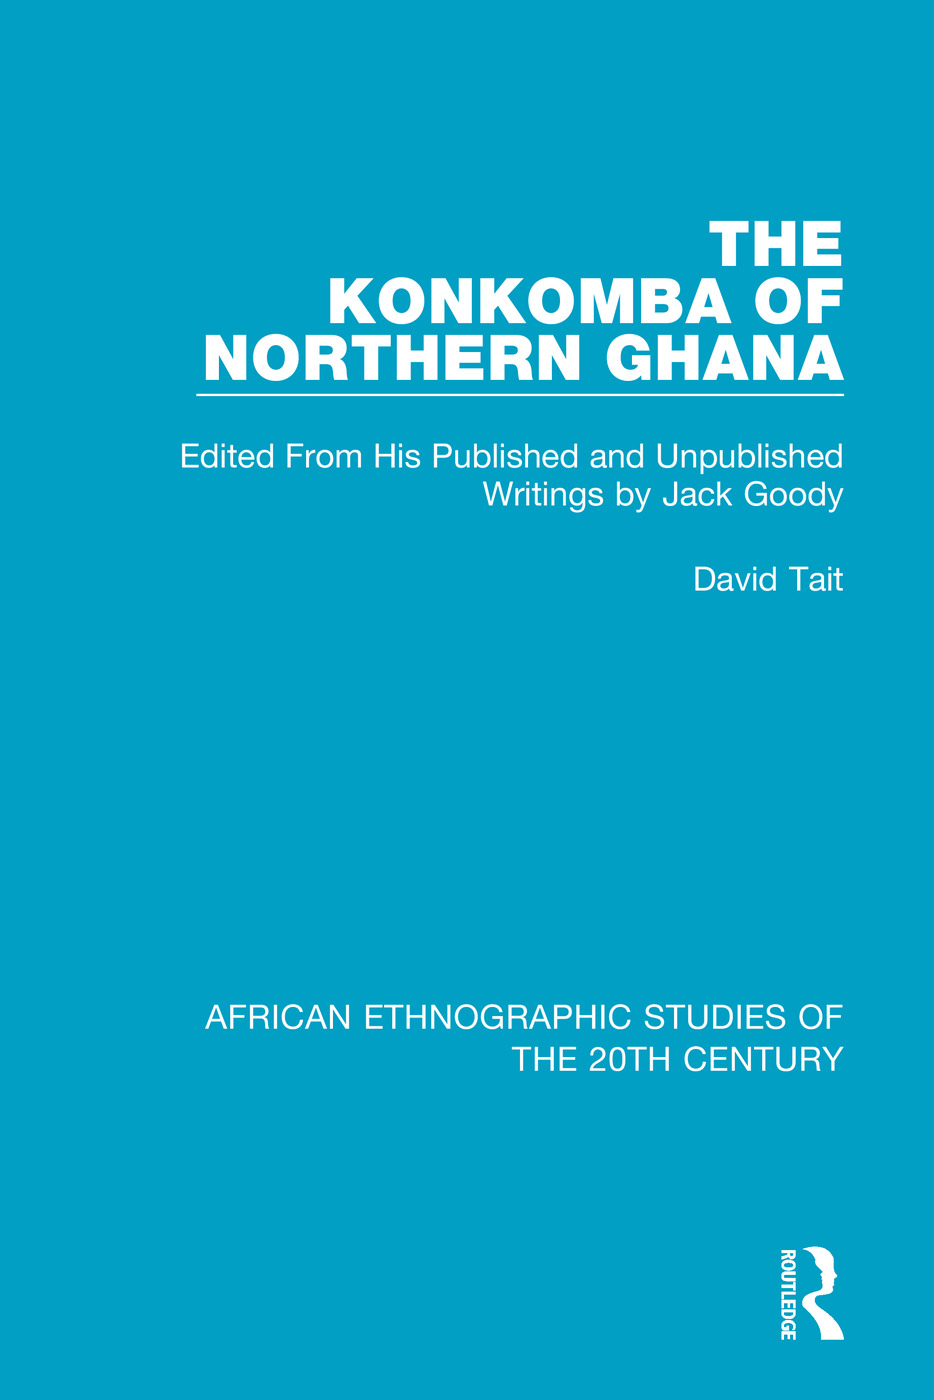 The Konkomba of Northern Ghana: Edited From His Published and Unpublished Writings by Jack Goody book cover